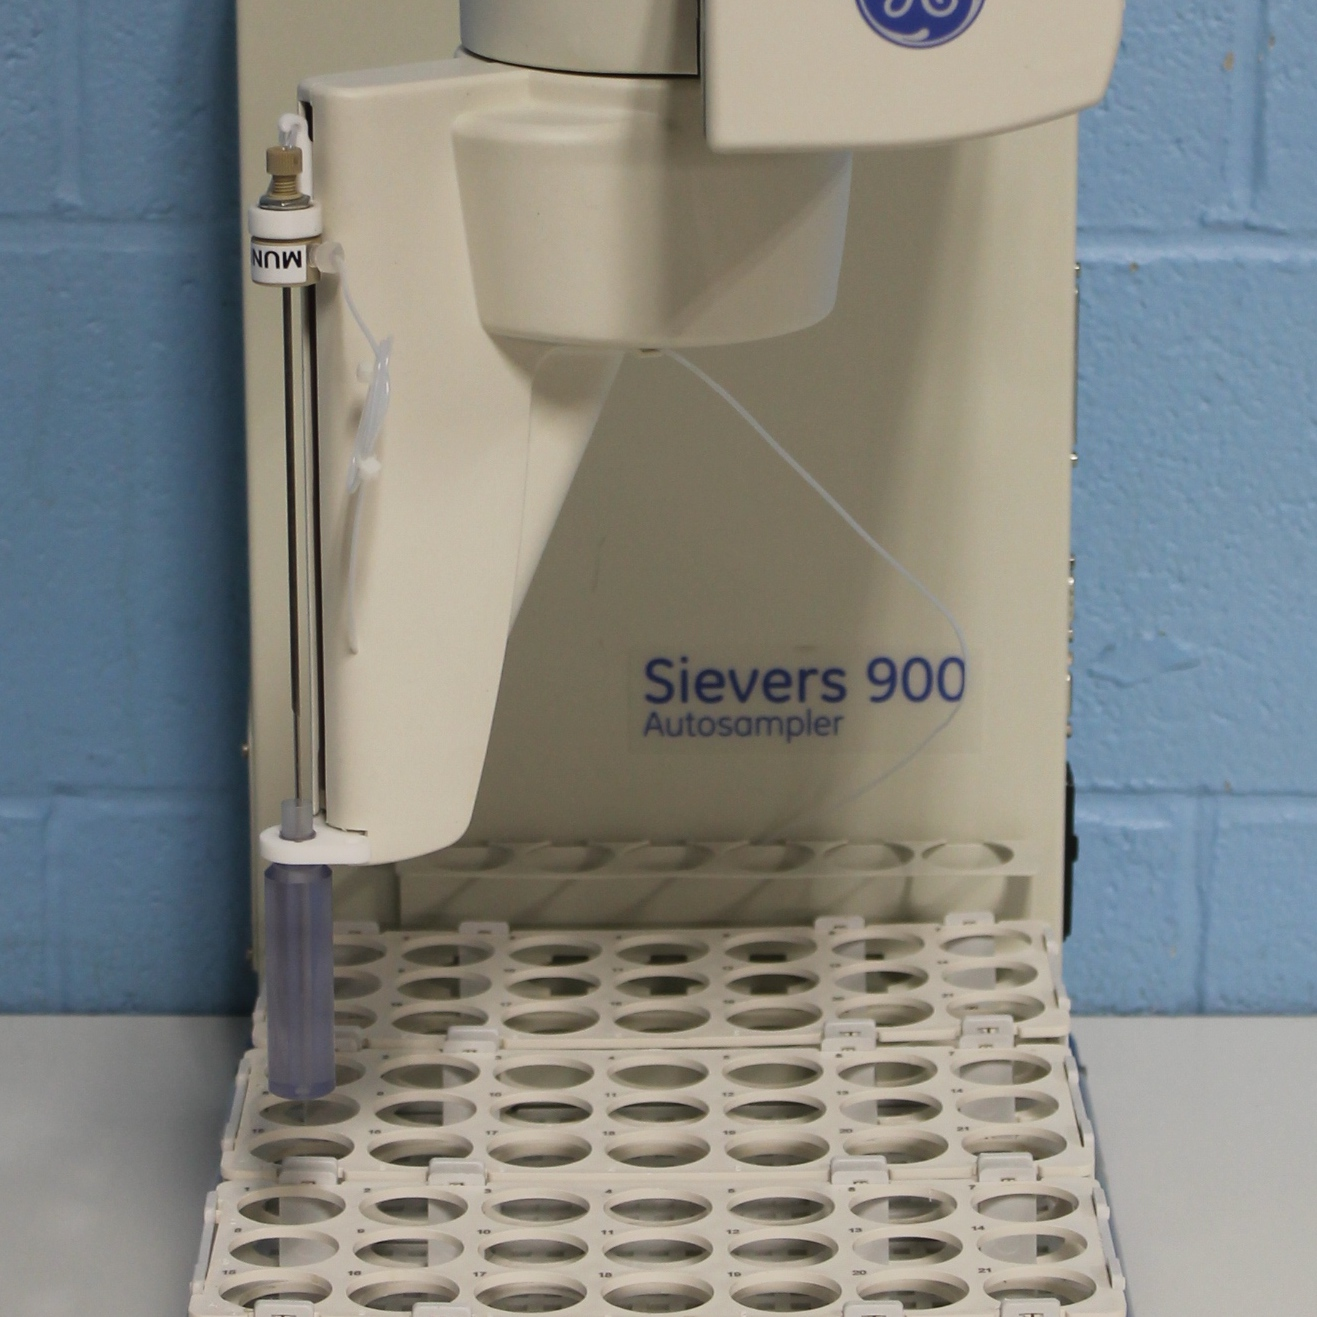 Sievers 900 Autosampler Image